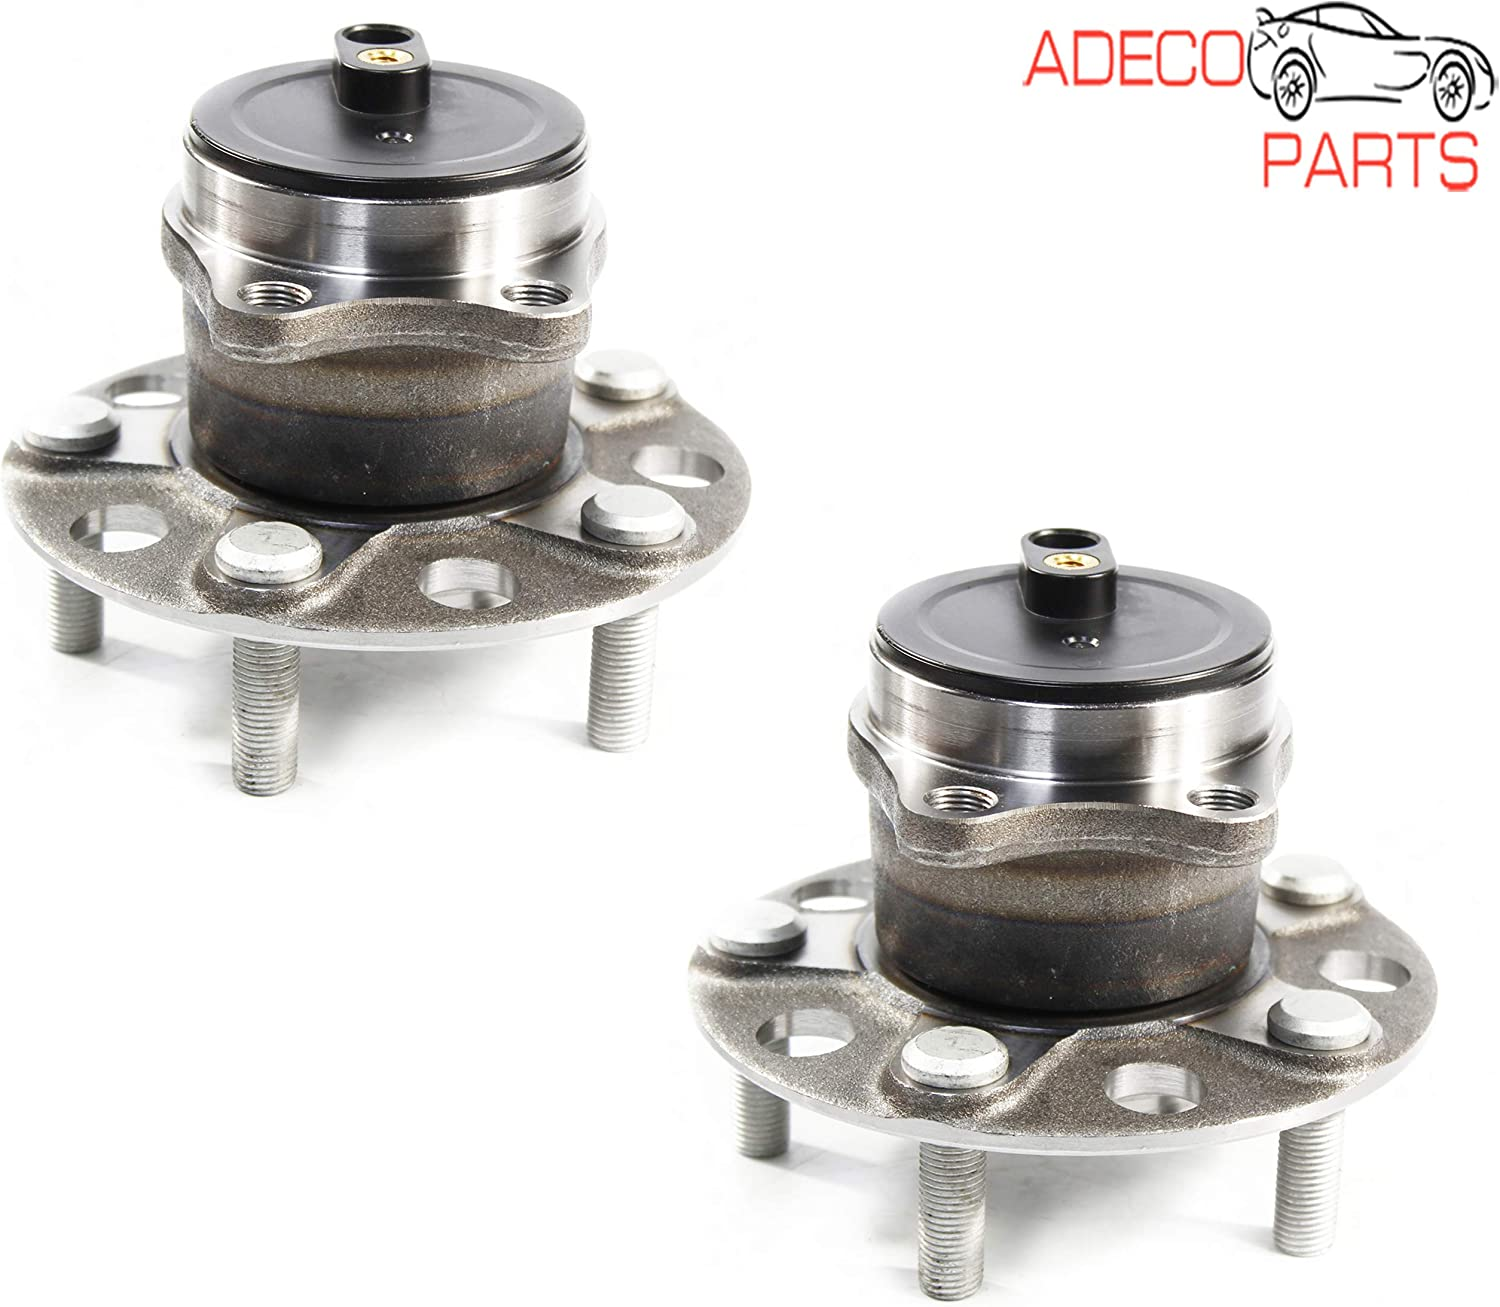 AdecoAutoParts/© Two Front Rear Wheel bearing /& Hub Assembly WH512514 WH930899 for 200 Cherokee FWD 2014 2015 2016 2017 2018 2019